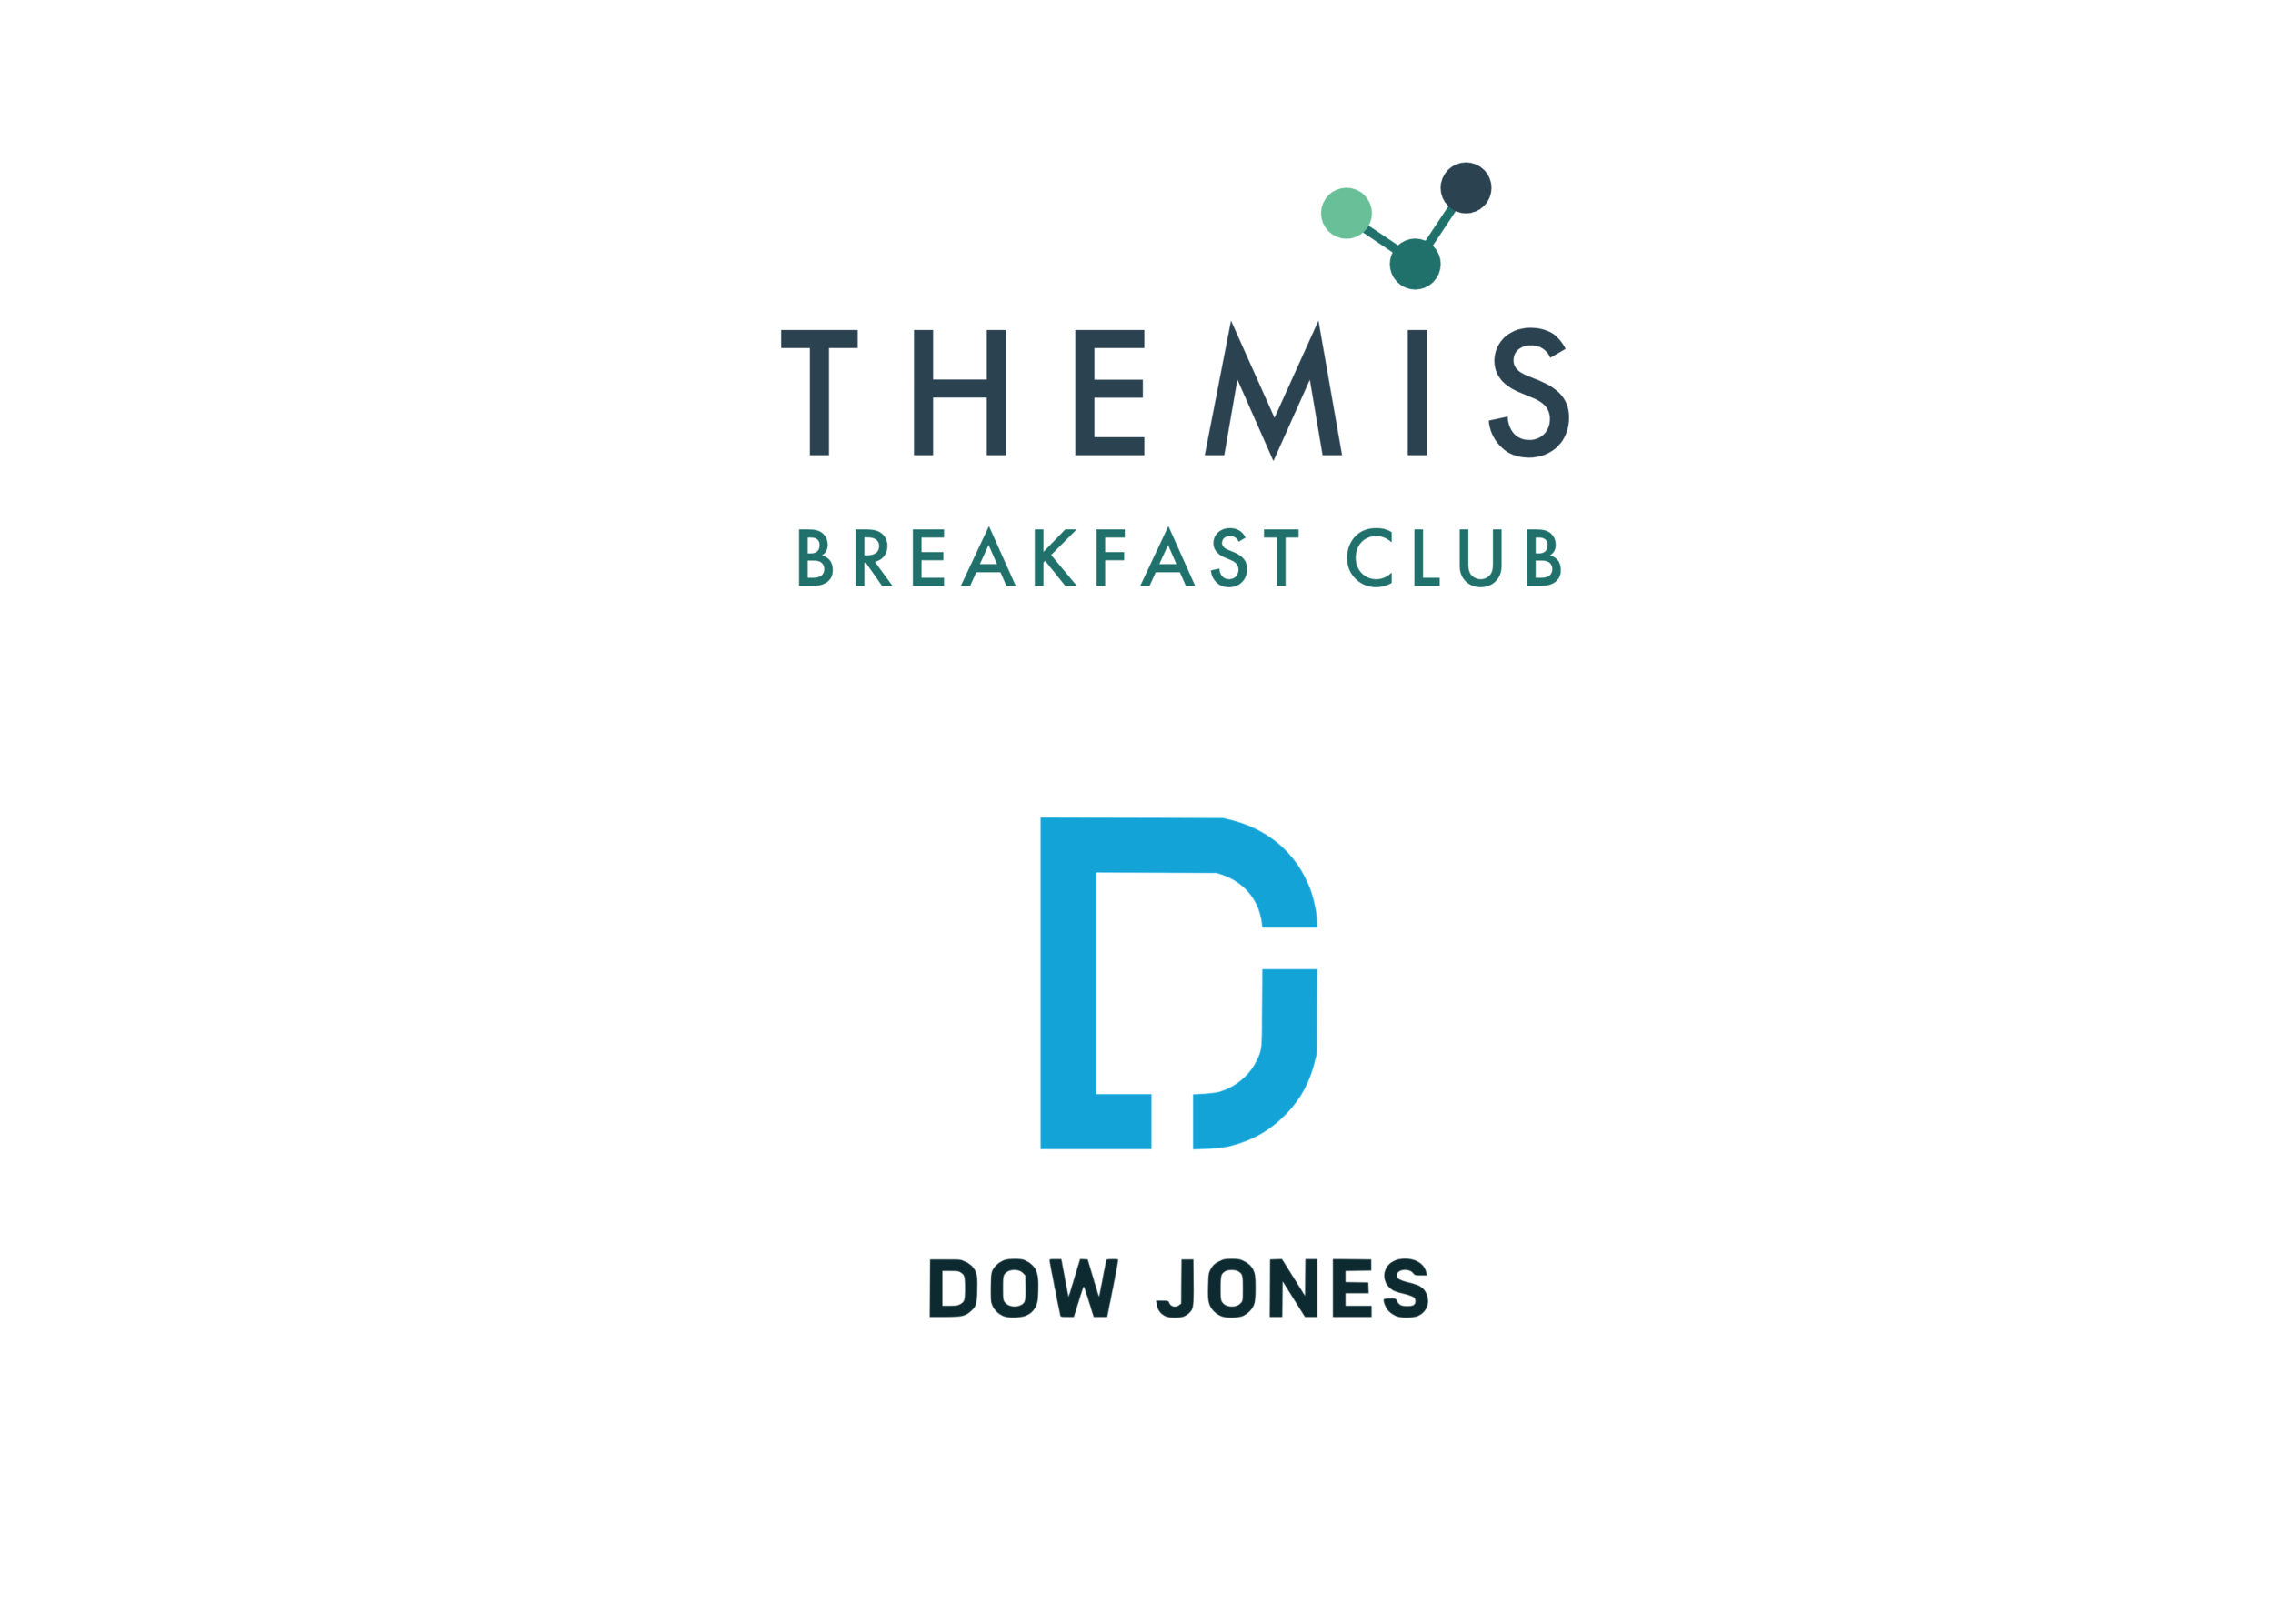 Dow Jones Themis Breakfast Club (2).png